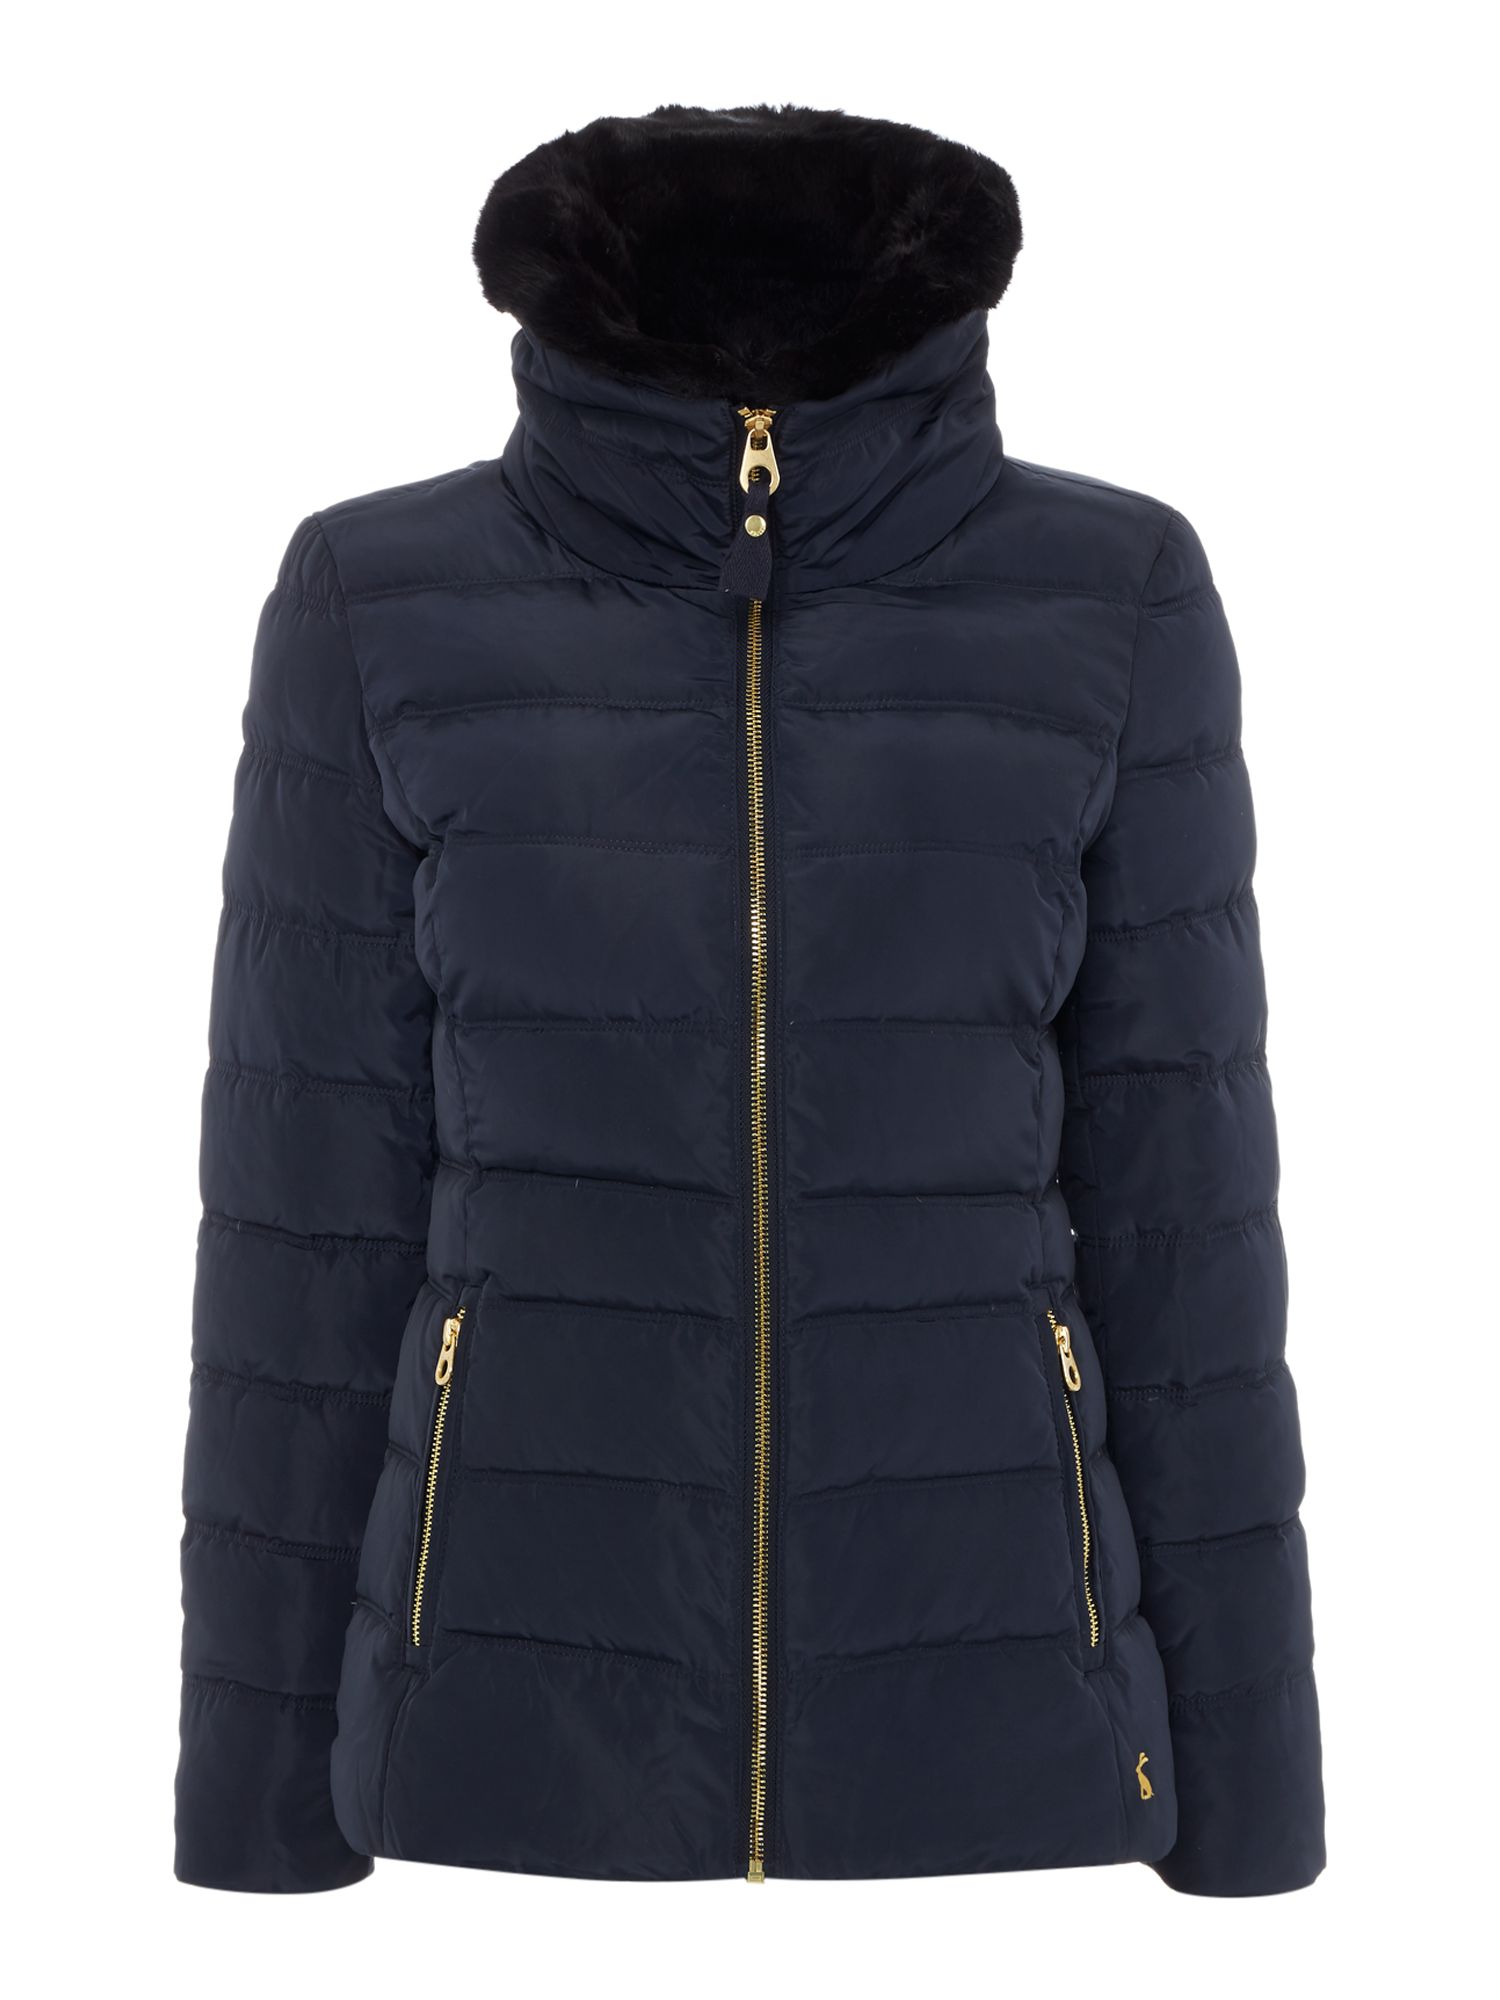 Joules Padded Jacket With Faux Fur Trim, Navy